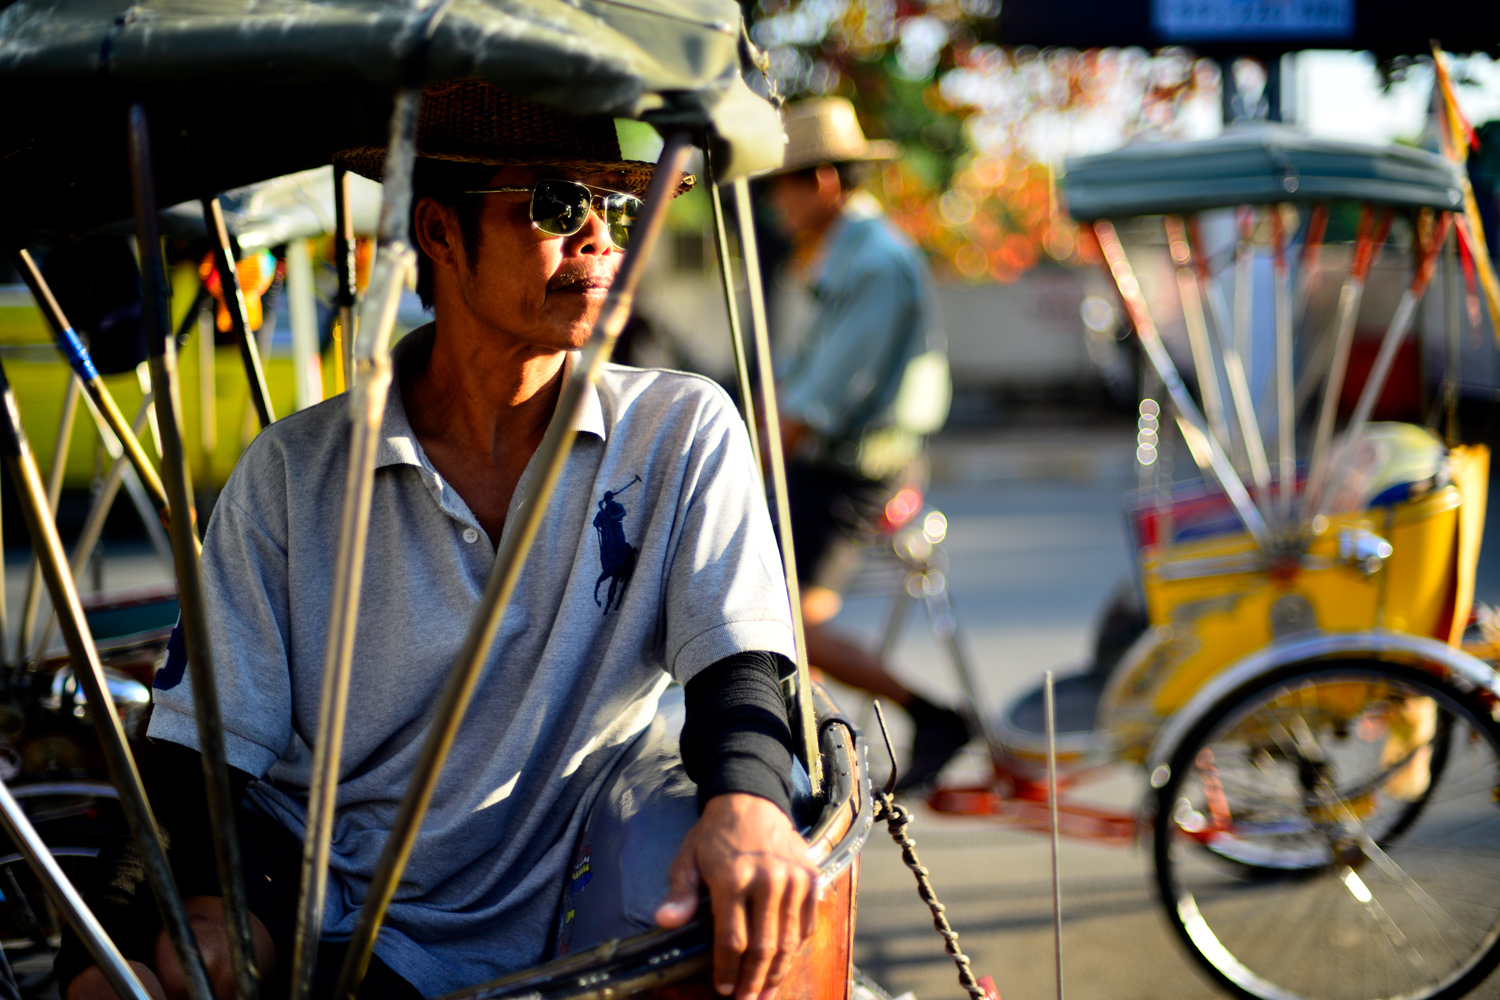 Focusing Tips for Beginners Tricycle taxis in Chiang Mai